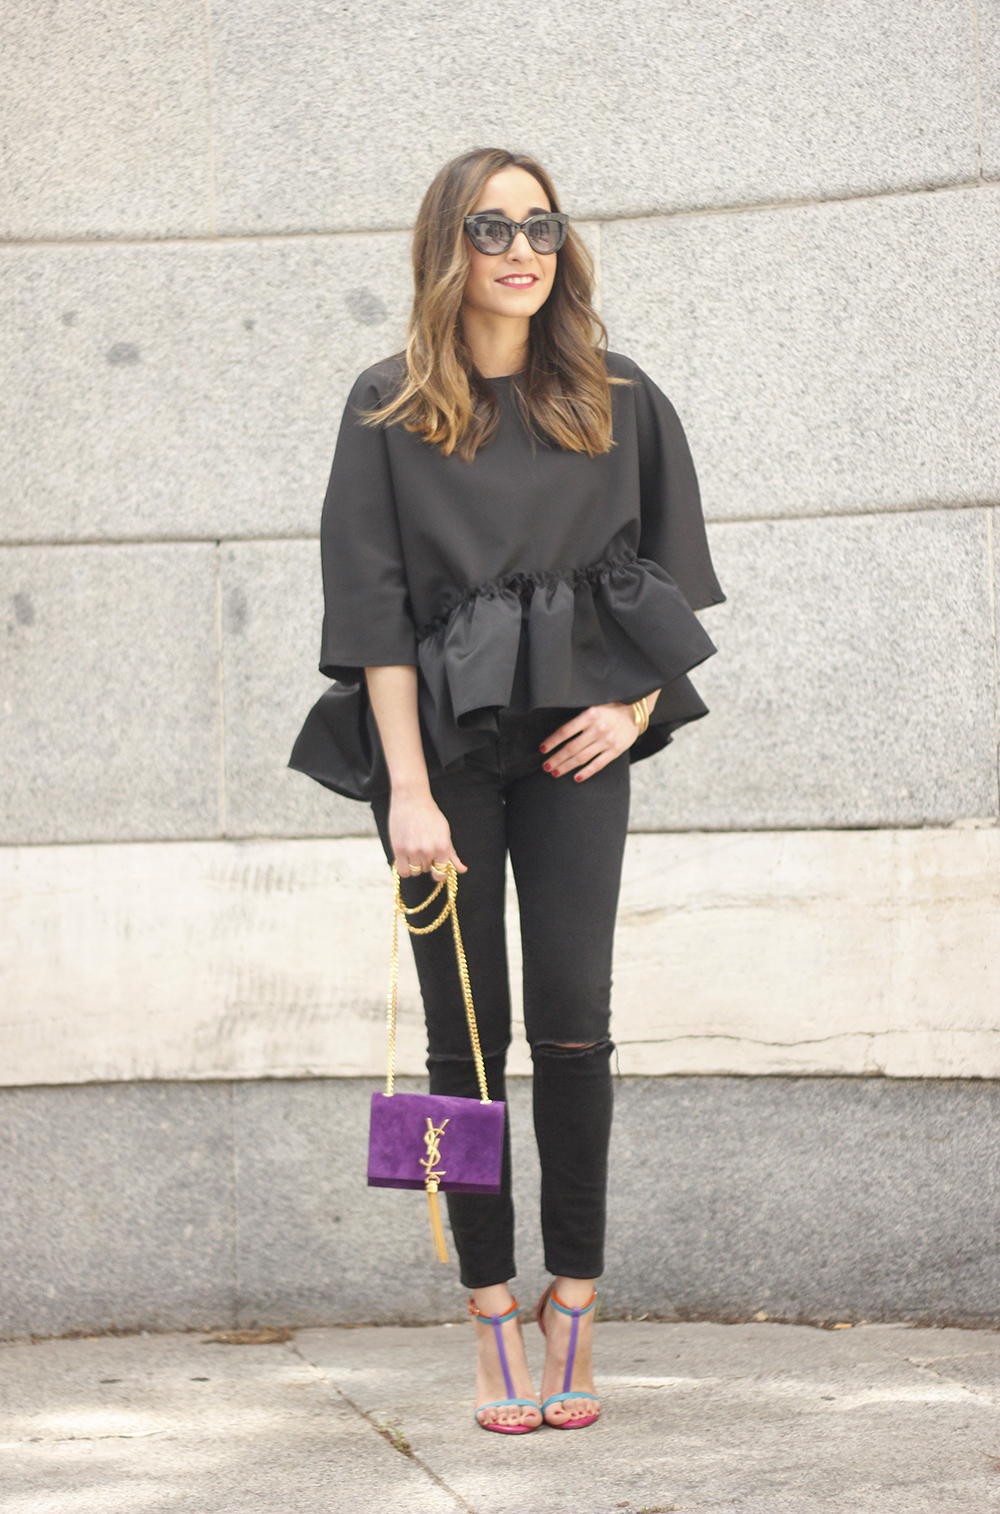 black top with a ruffle Carolina Herrera Sandals YSL bag accessories outfit style09